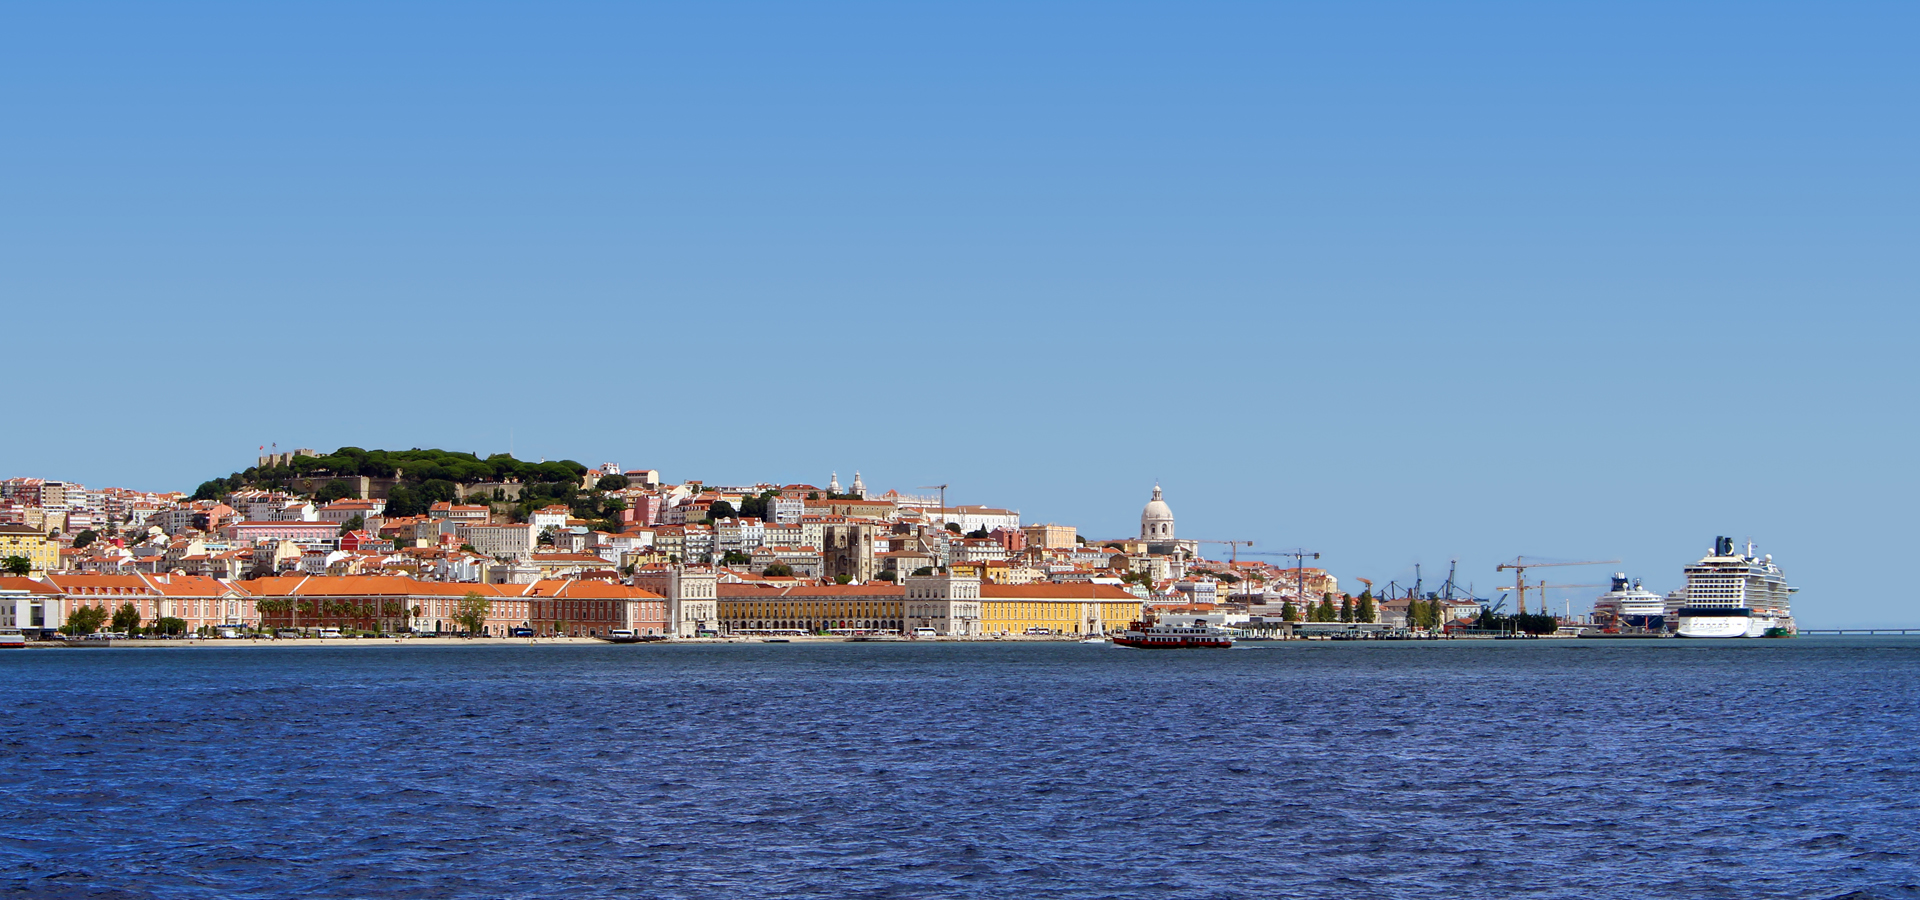 In 10 minutes by boat to the center of Lisbon